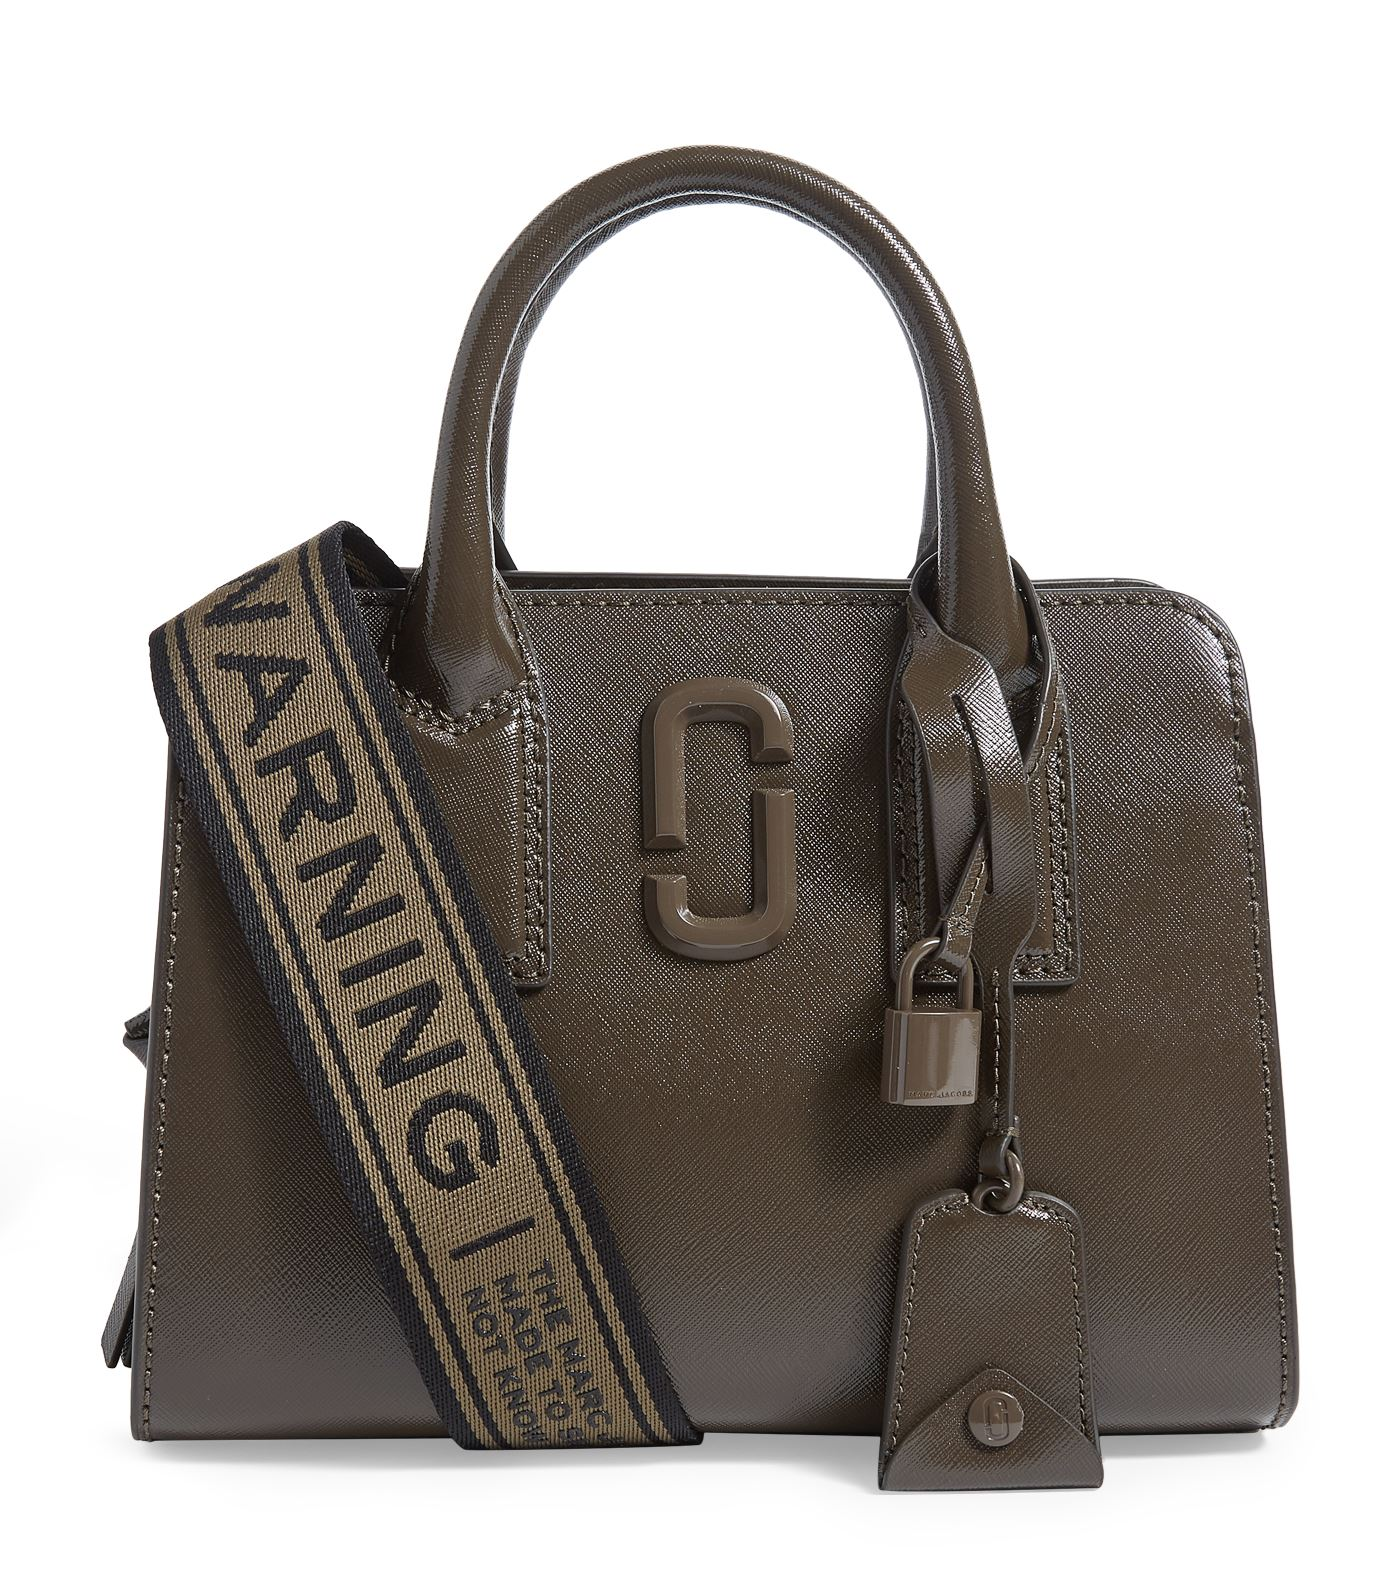 Marc Jacobs - Instantly recognisable courtesy of the detachable Warning Webbing strap, The Little Bi